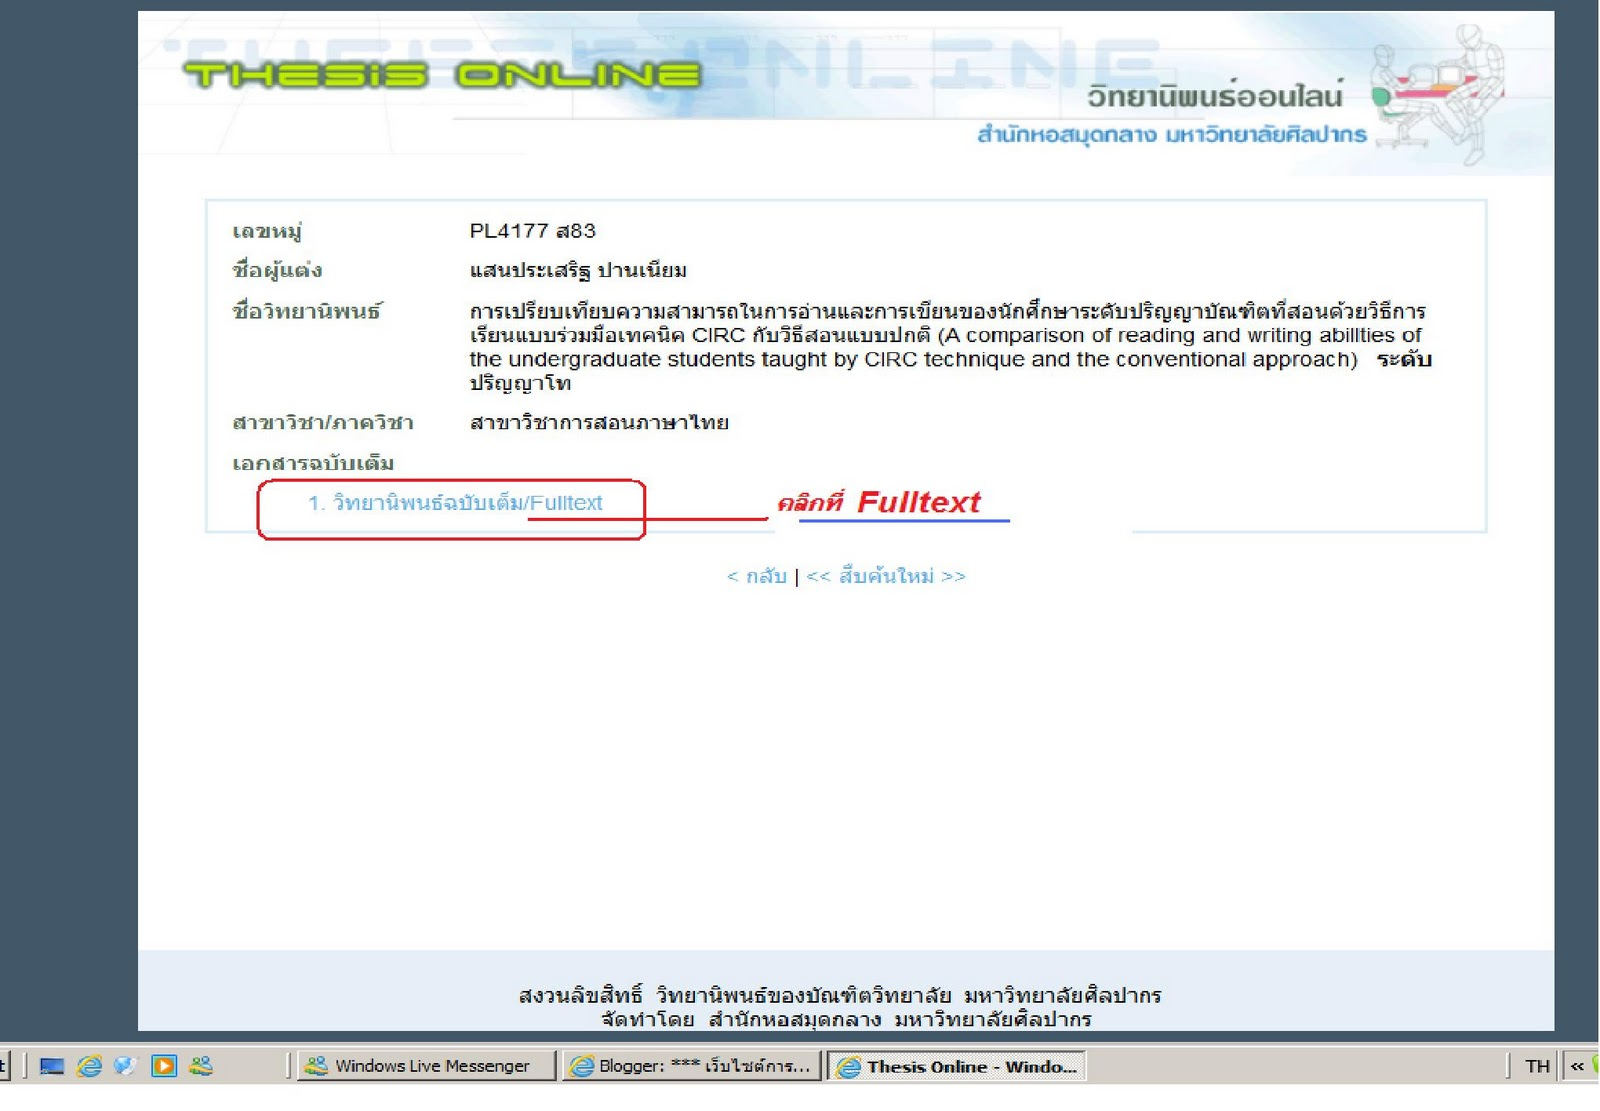 thesis su.ac.th While scanning server information of ithesis-irsuacth we found that it's hosted by silpakorn university from the very beginning since november 15, 2017.